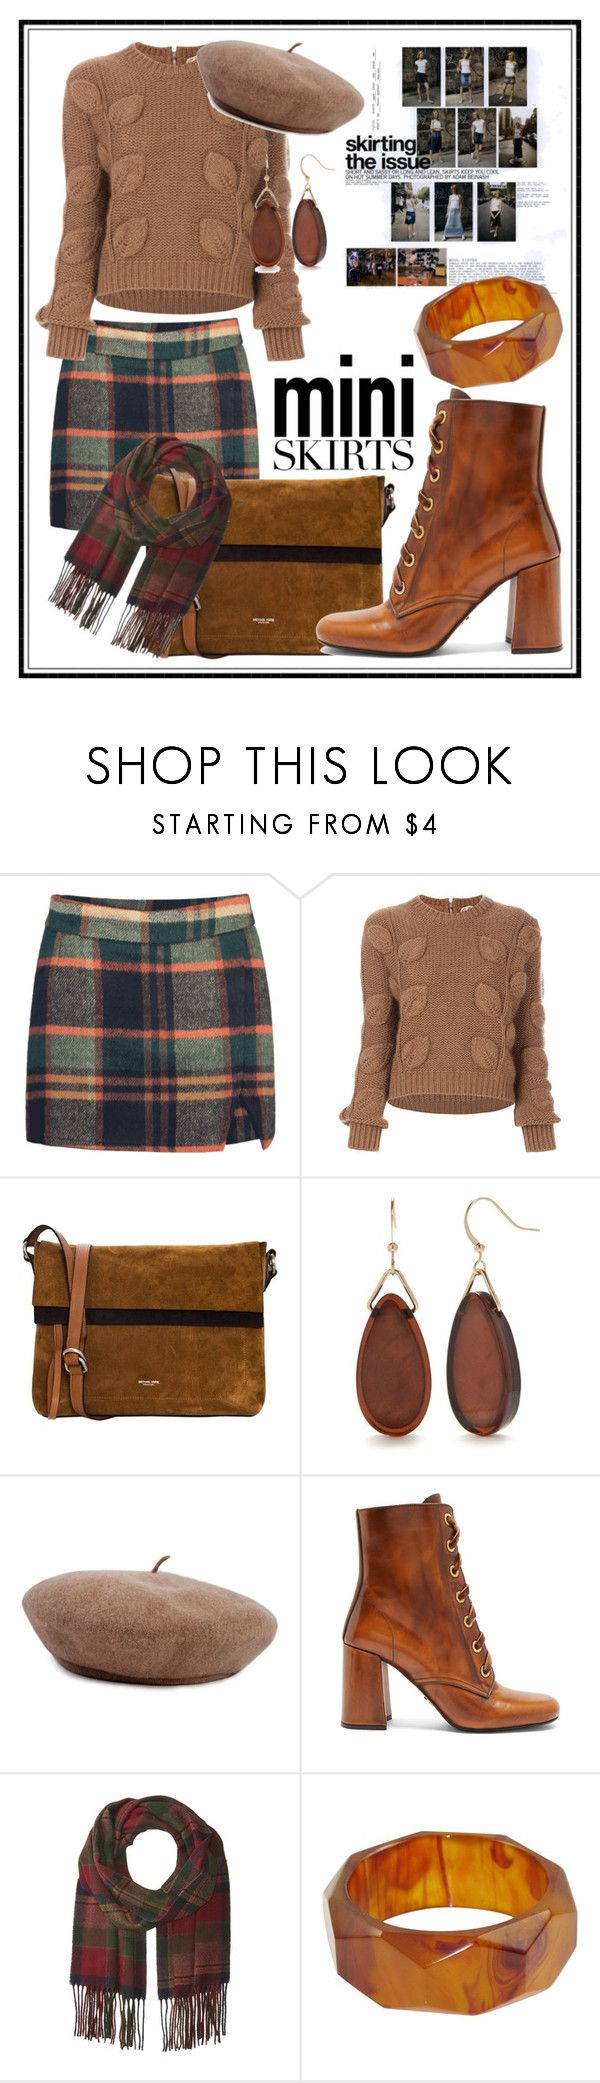 """""""STYLE 44"""" by seus-eky on Polyvore featuring N°21, Michael Kors, Kim Rogers, Prada and Polo Ralph Lauren"""